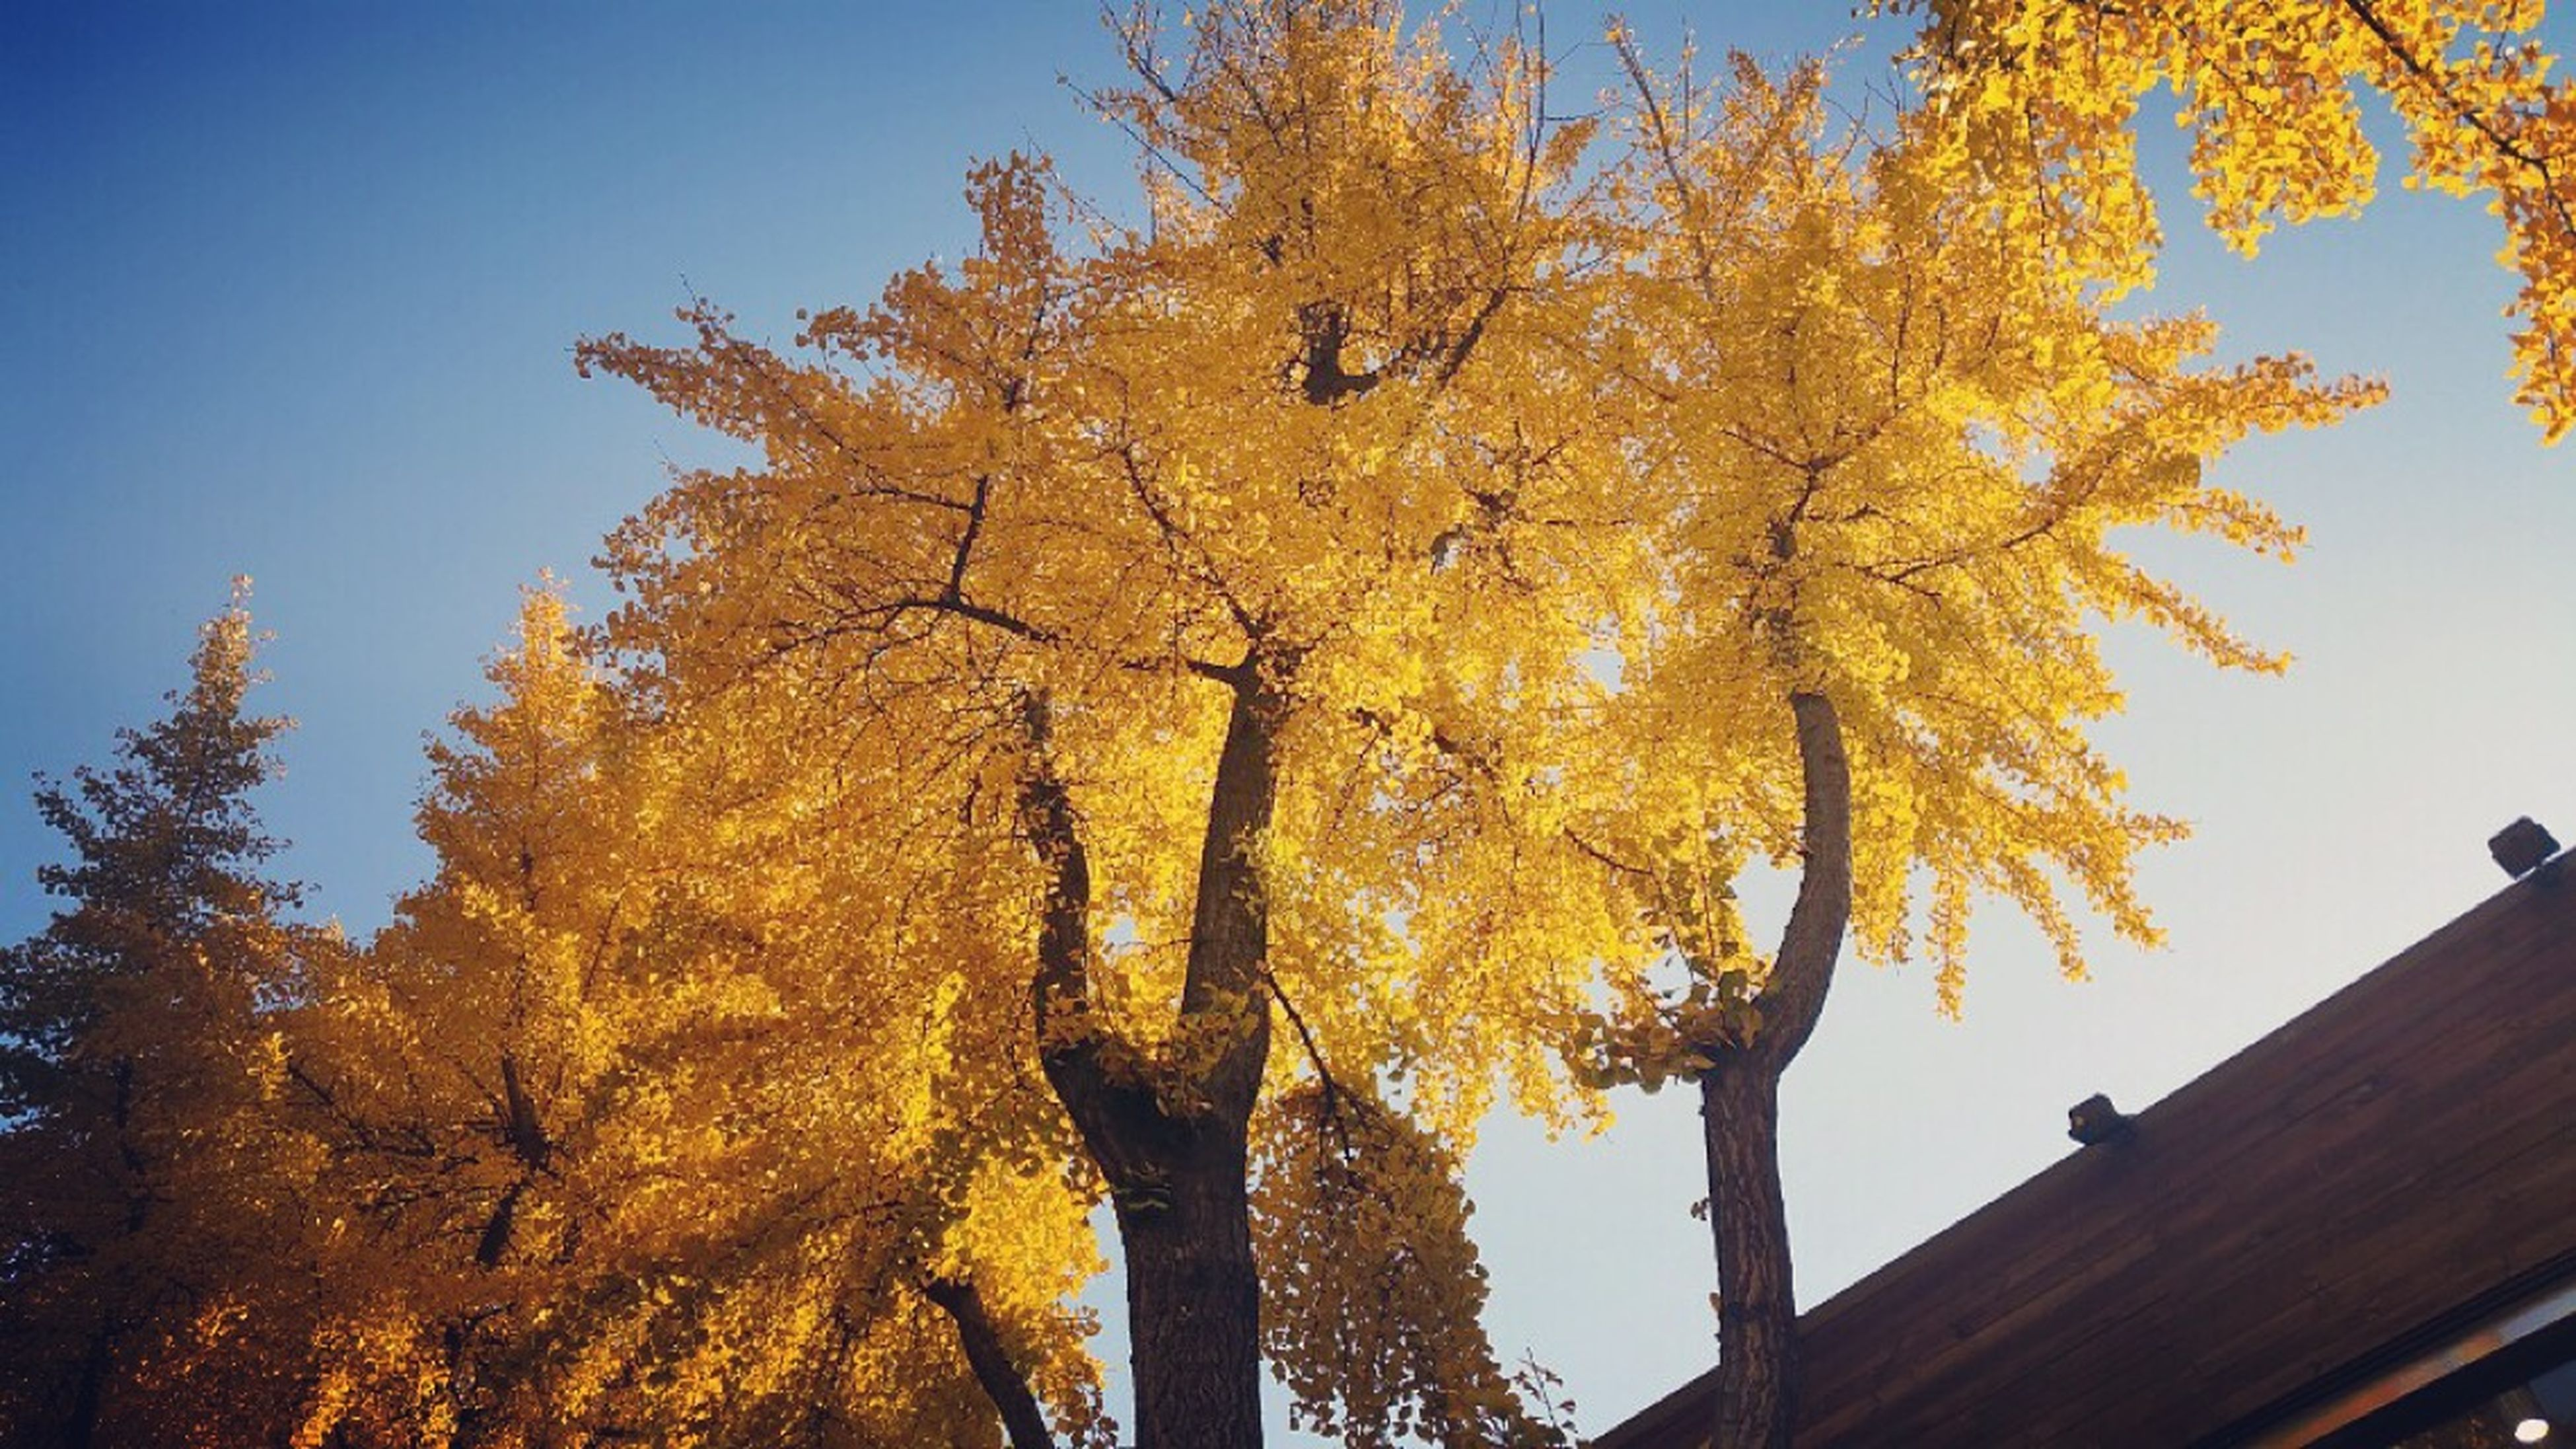 tree, branch, low angle view, autumn, clear sky, change, blue, growth, nature, yellow, beauty in nature, orange color, season, built structure, building exterior, sky, tranquility, no people, outdoors, architecture